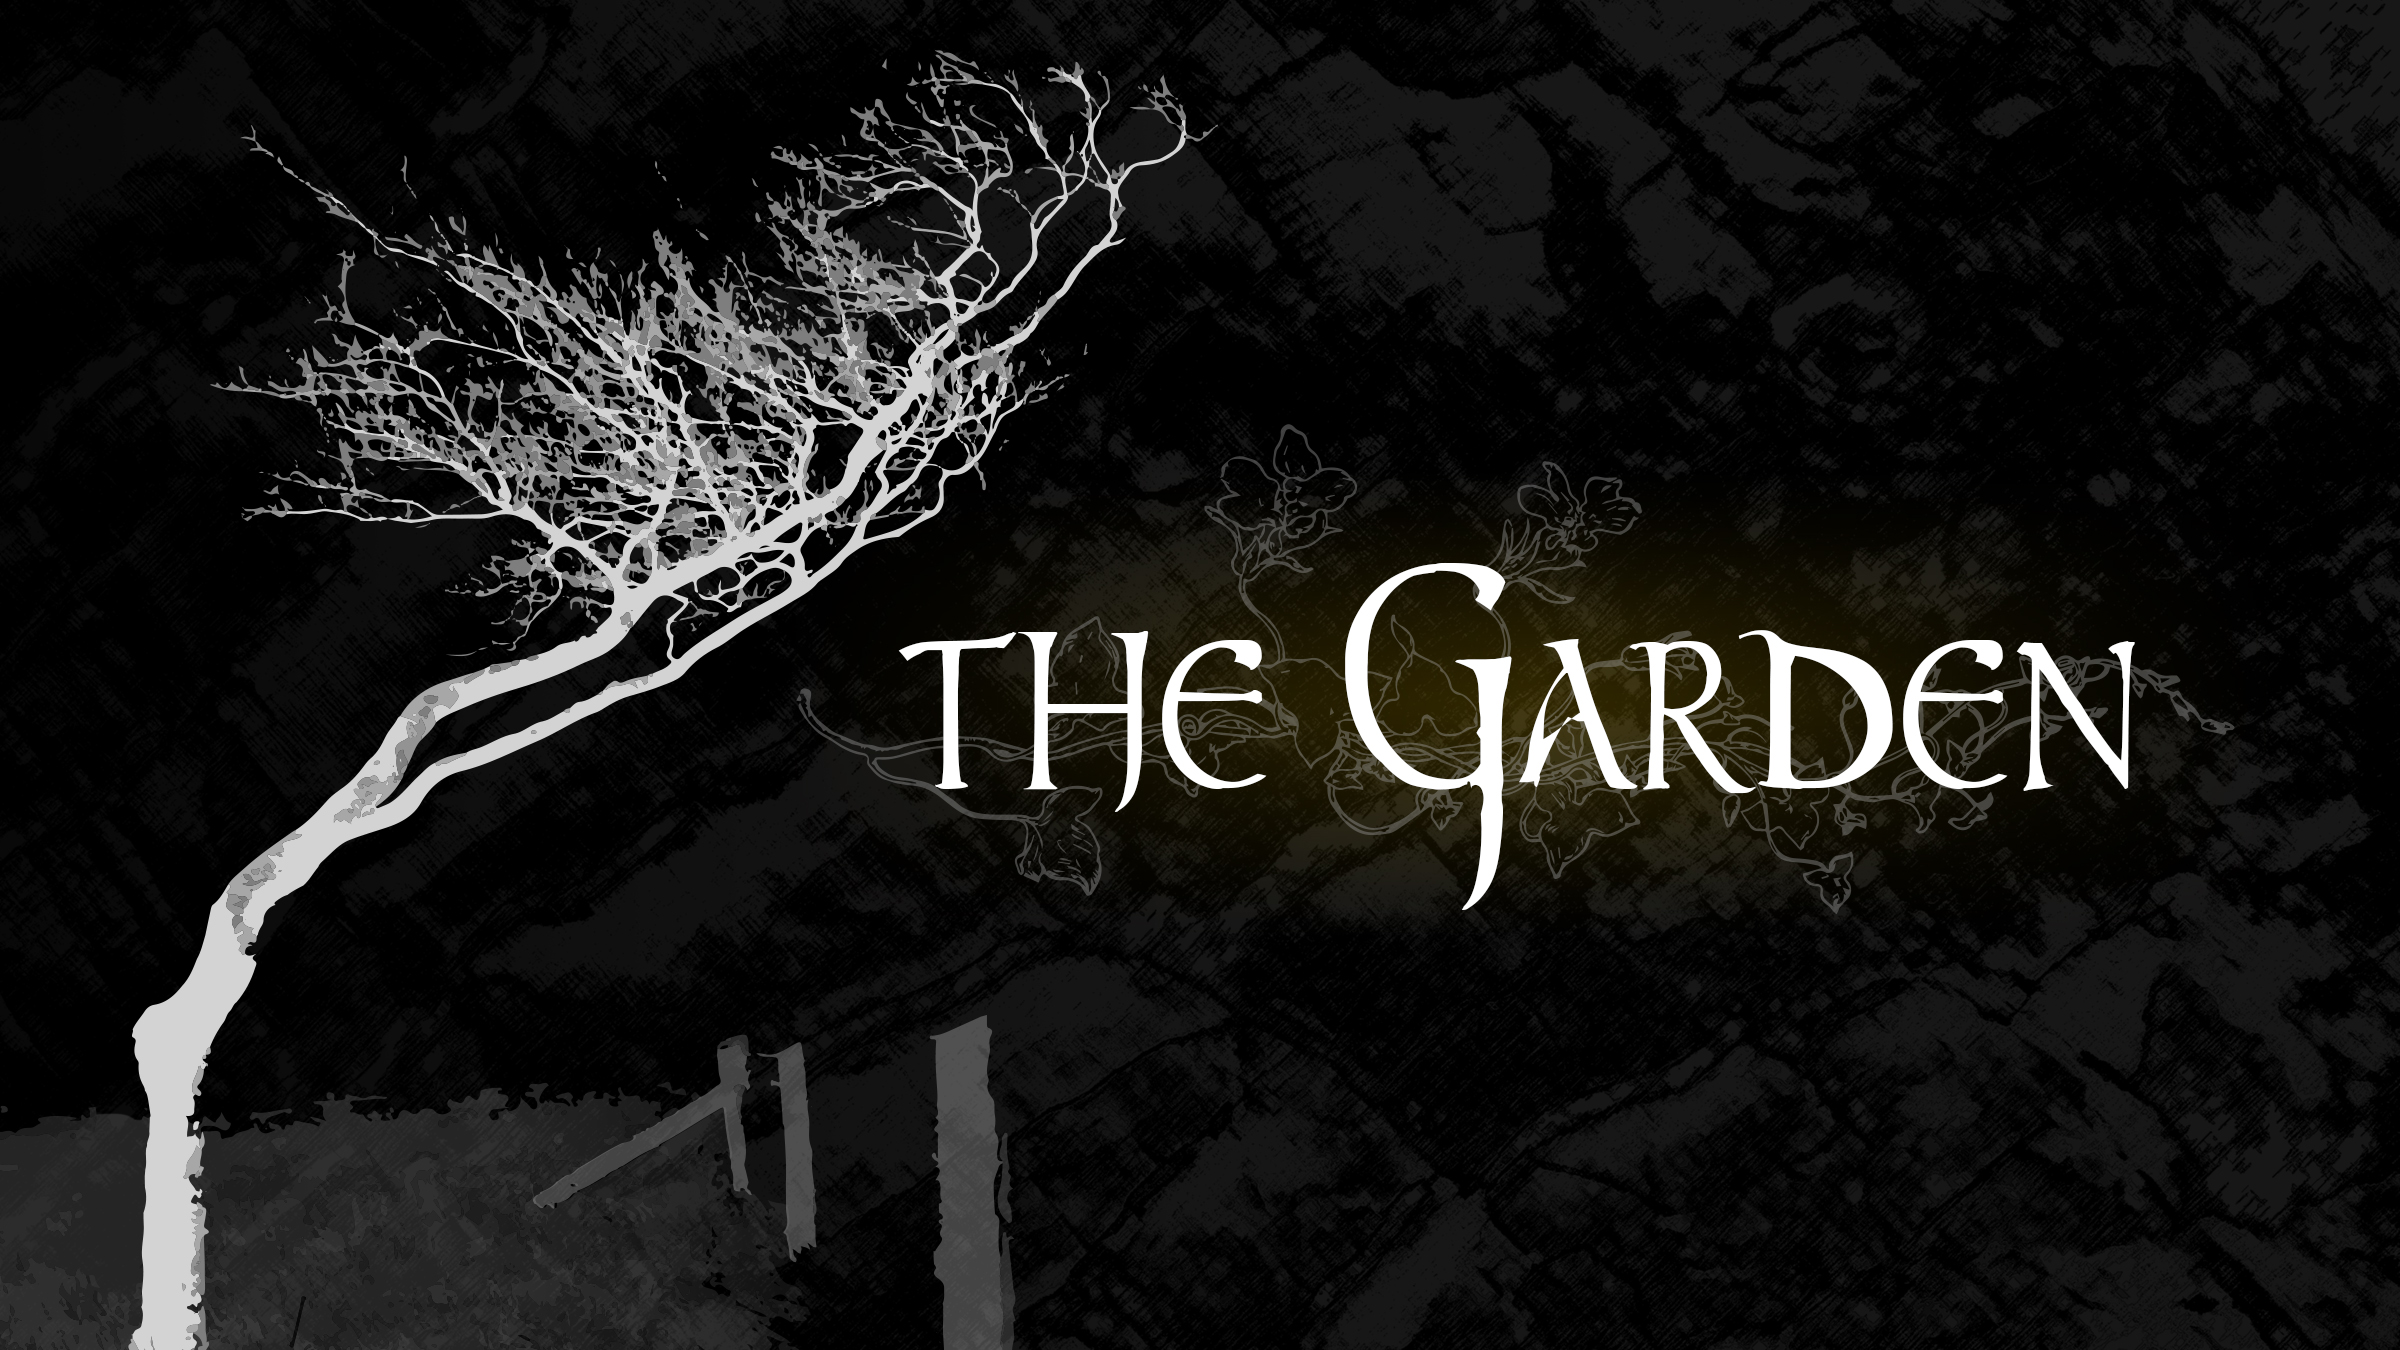 The Garden: We All Need a Place